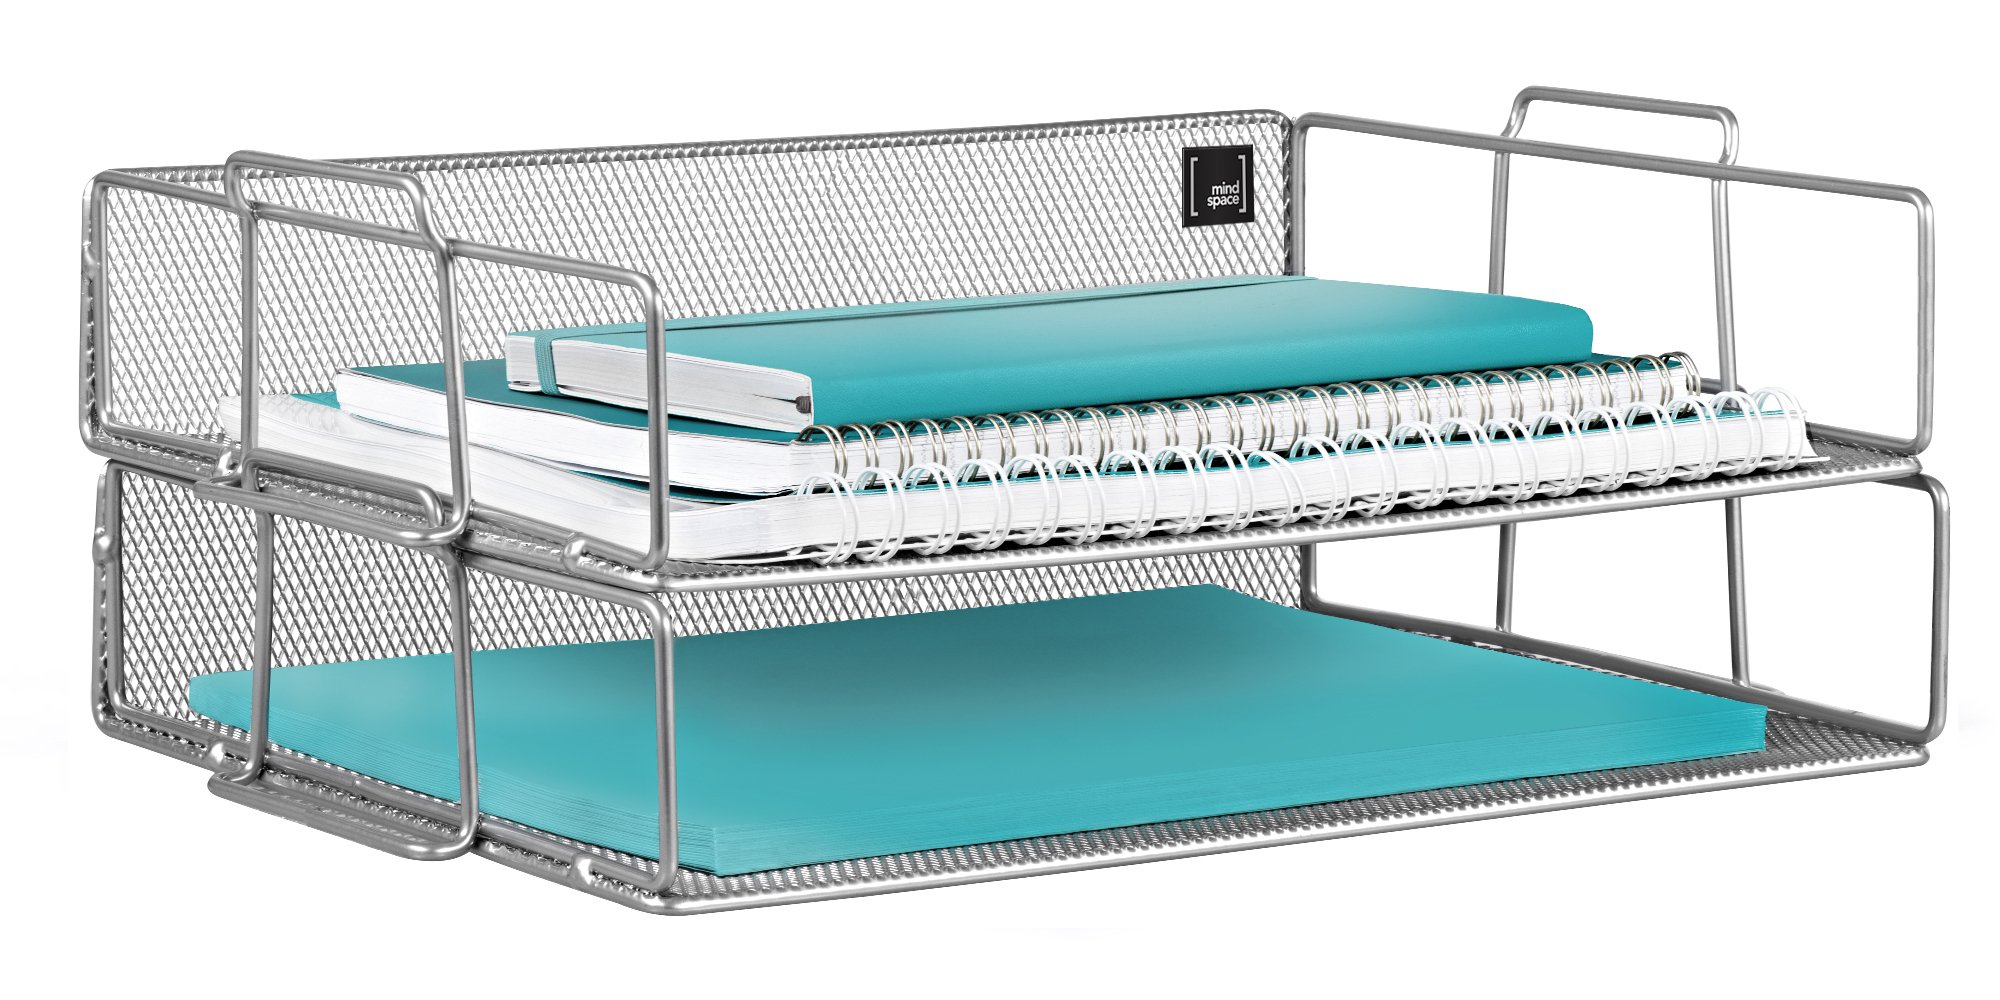 Mindspace 2 Tier Stackable Letter Tray Desk Organizer | The Mesh Collection, Silver